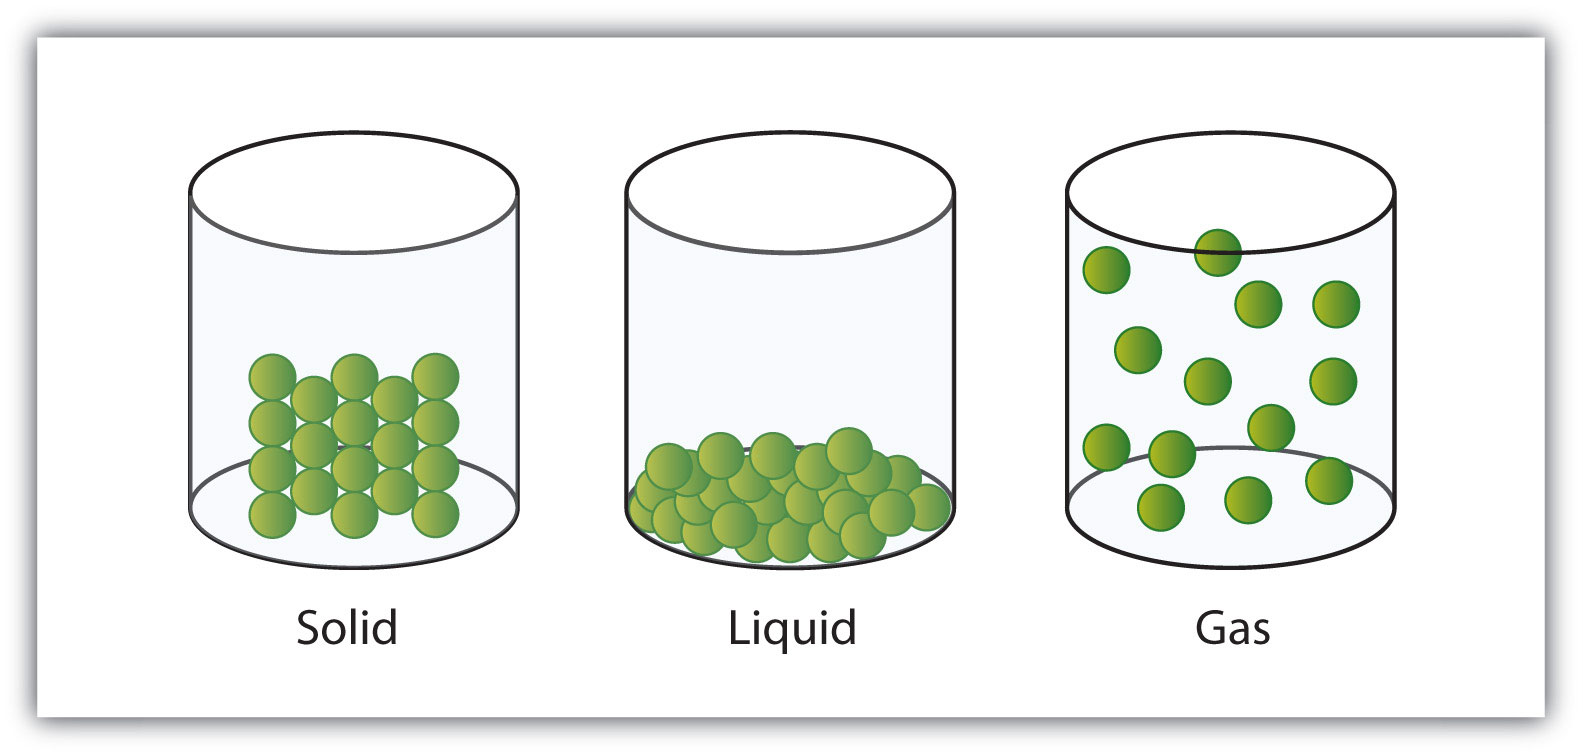 differences between solids liquids and gases on a molecular level